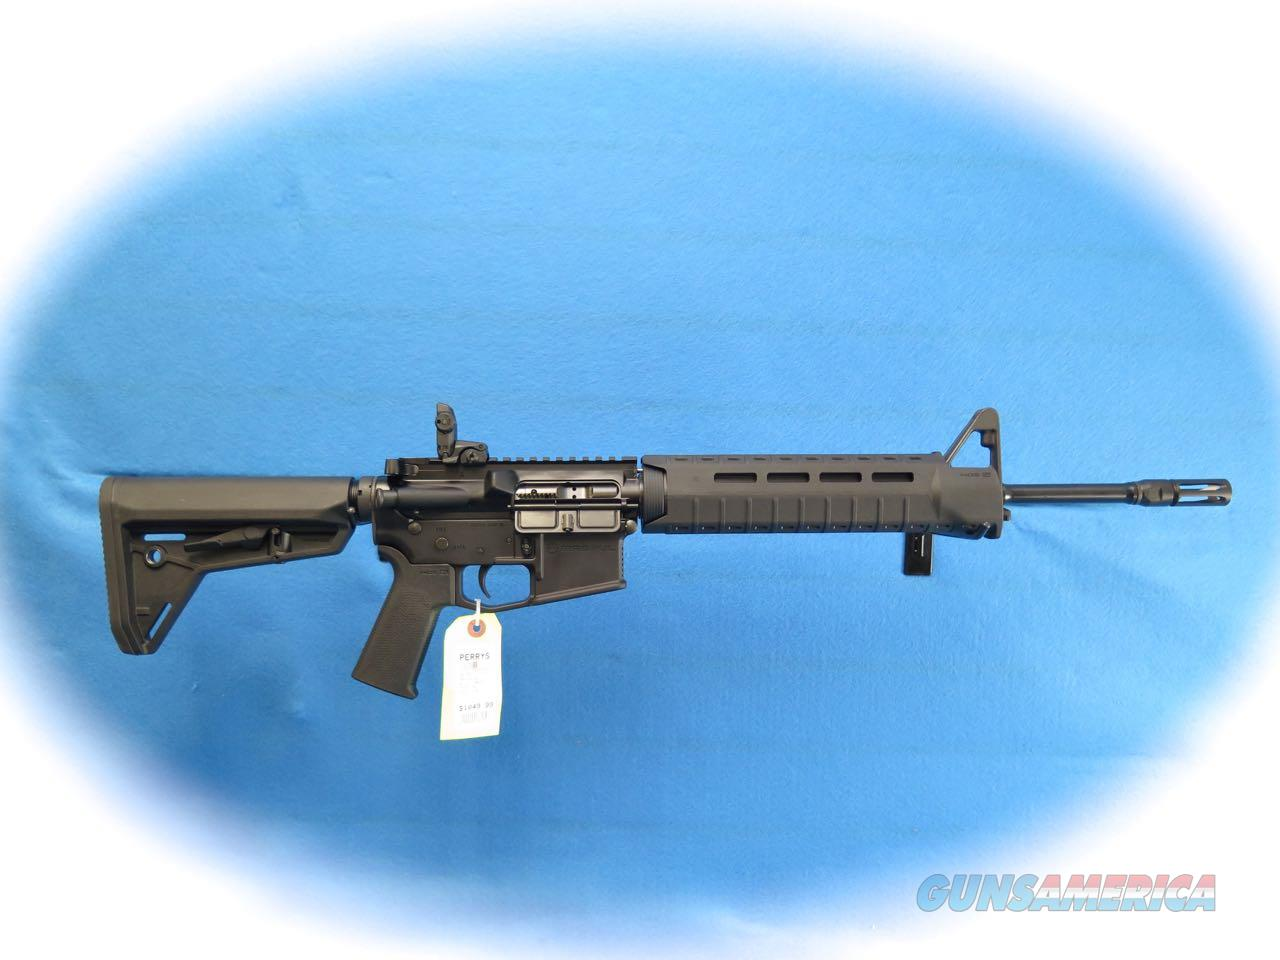 M&P15 MOE SL MID MAGPUL SPEC SERIES 5.56mm Cal SKU 11512 **New**  Guns > Rifles > Smith & Wesson Rifles > M&P